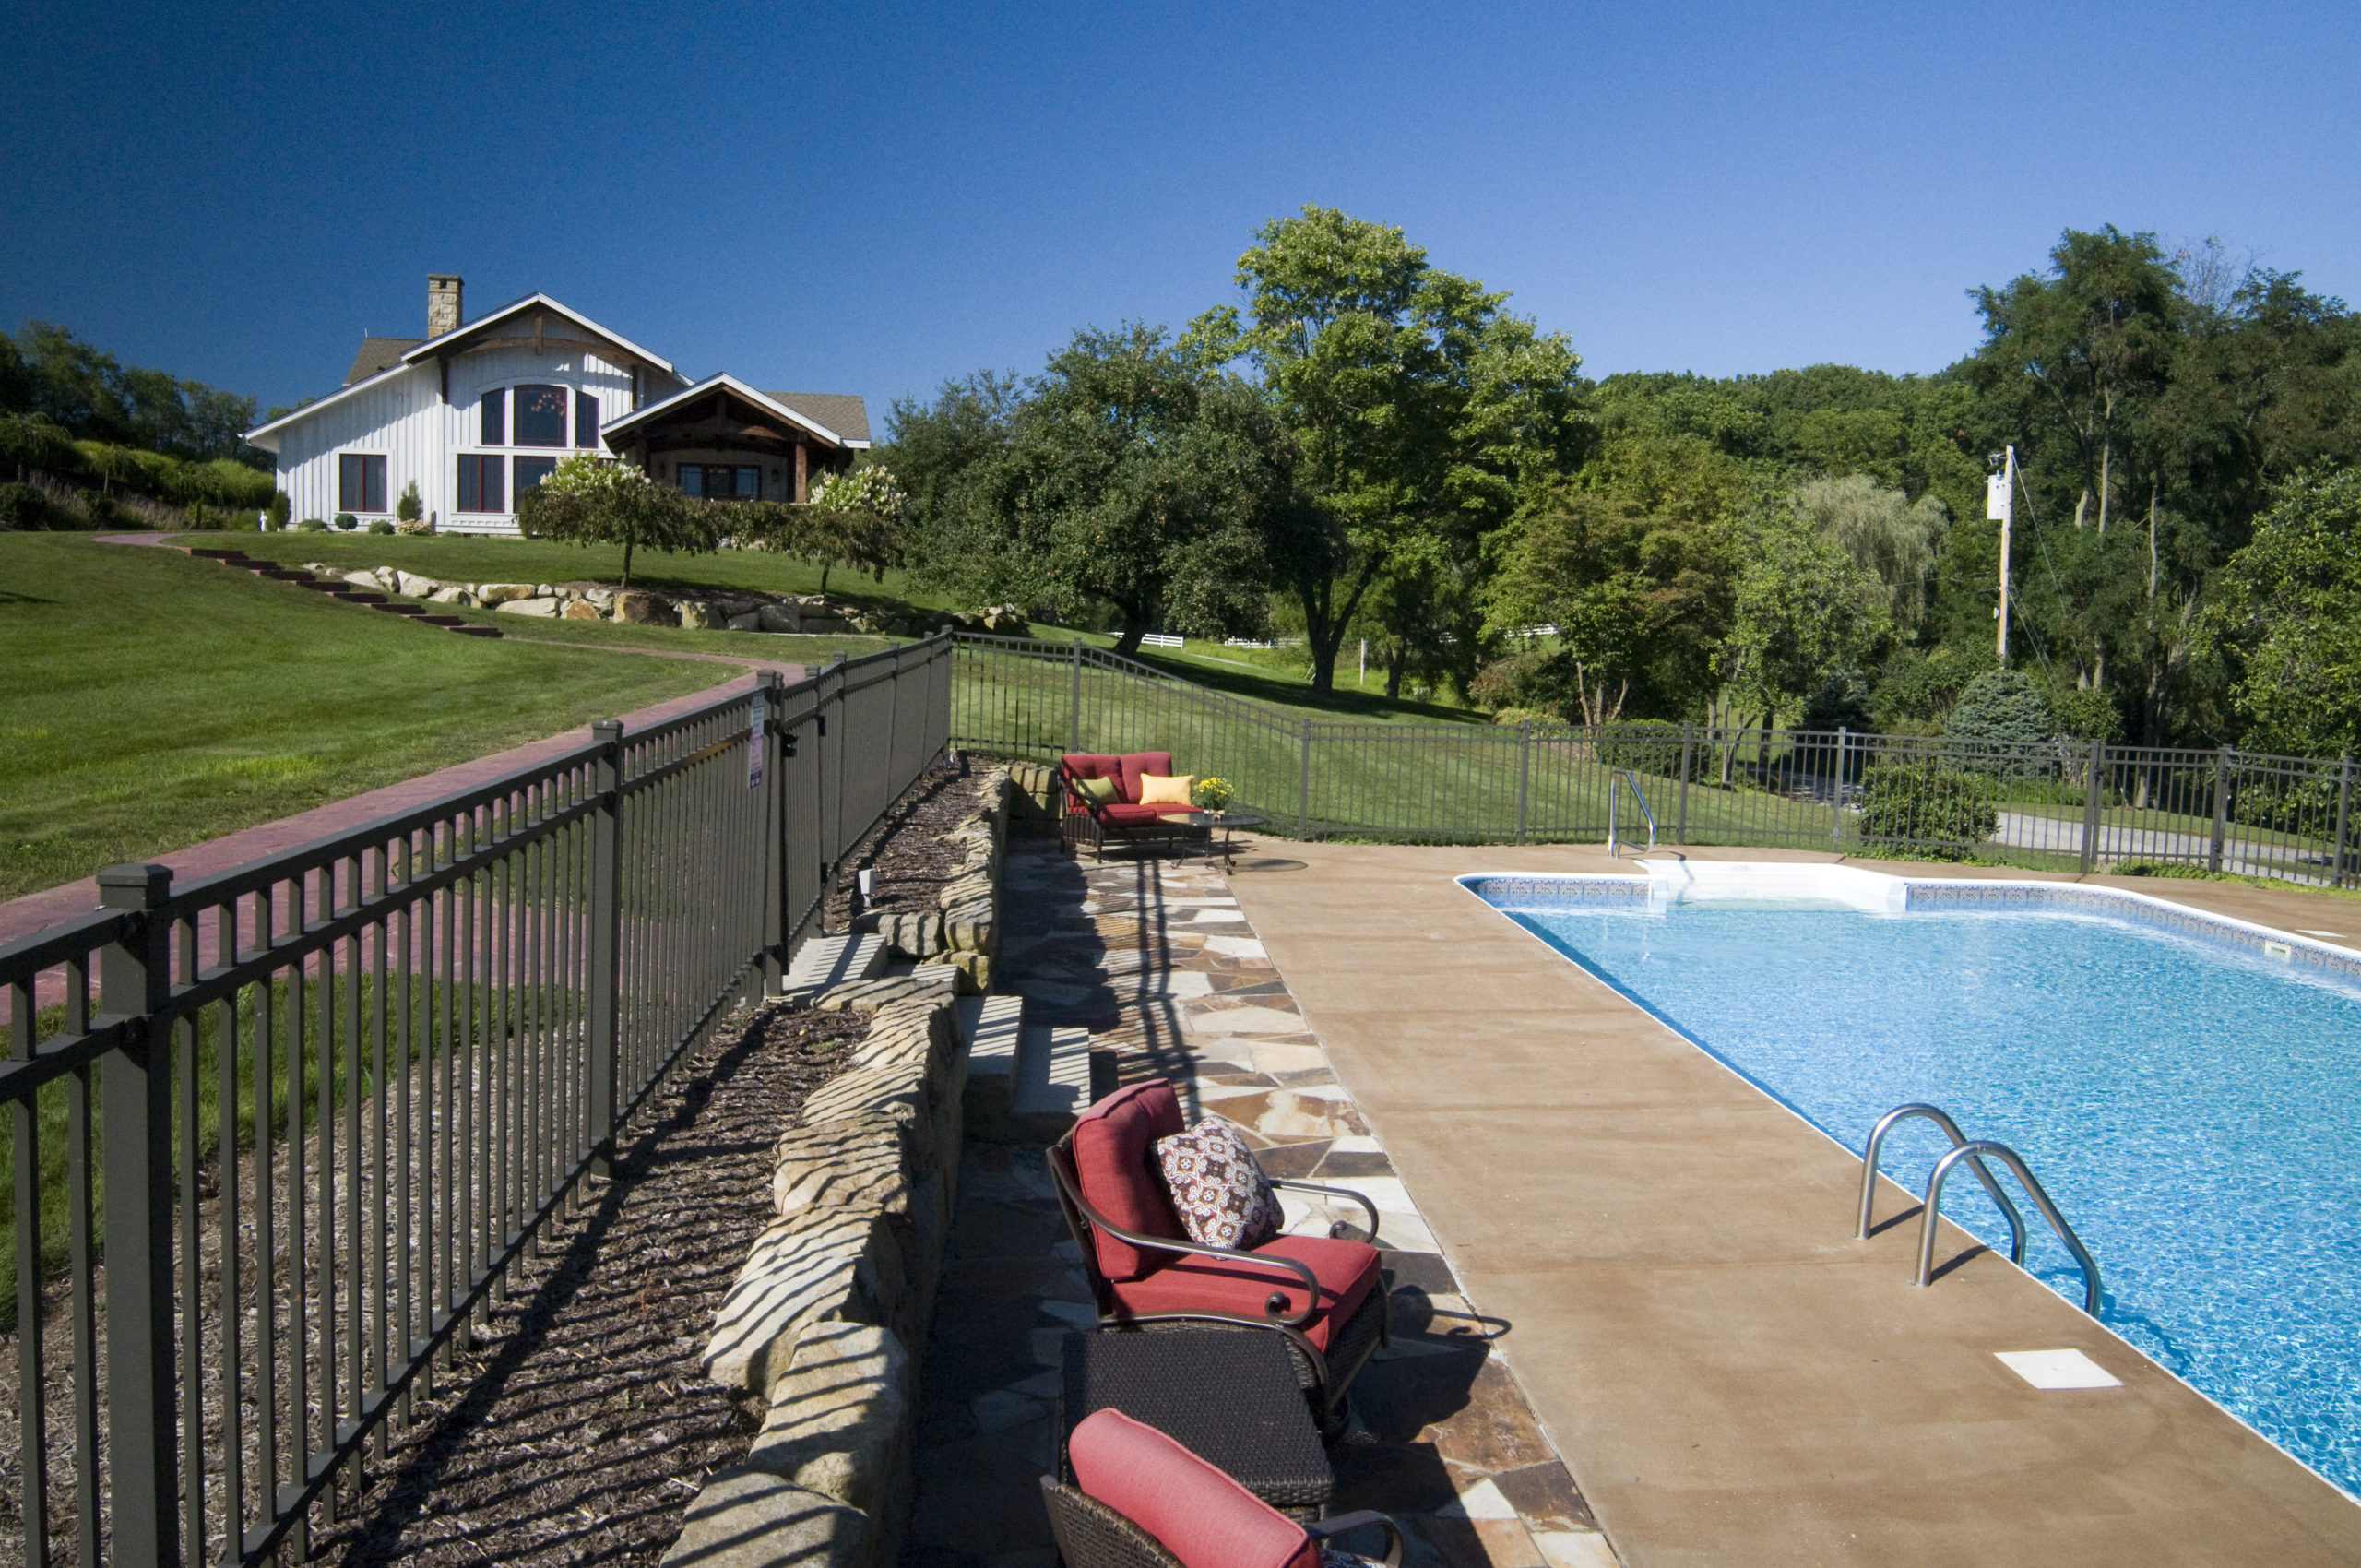 Pool overlooking the main lodge at Silvermist